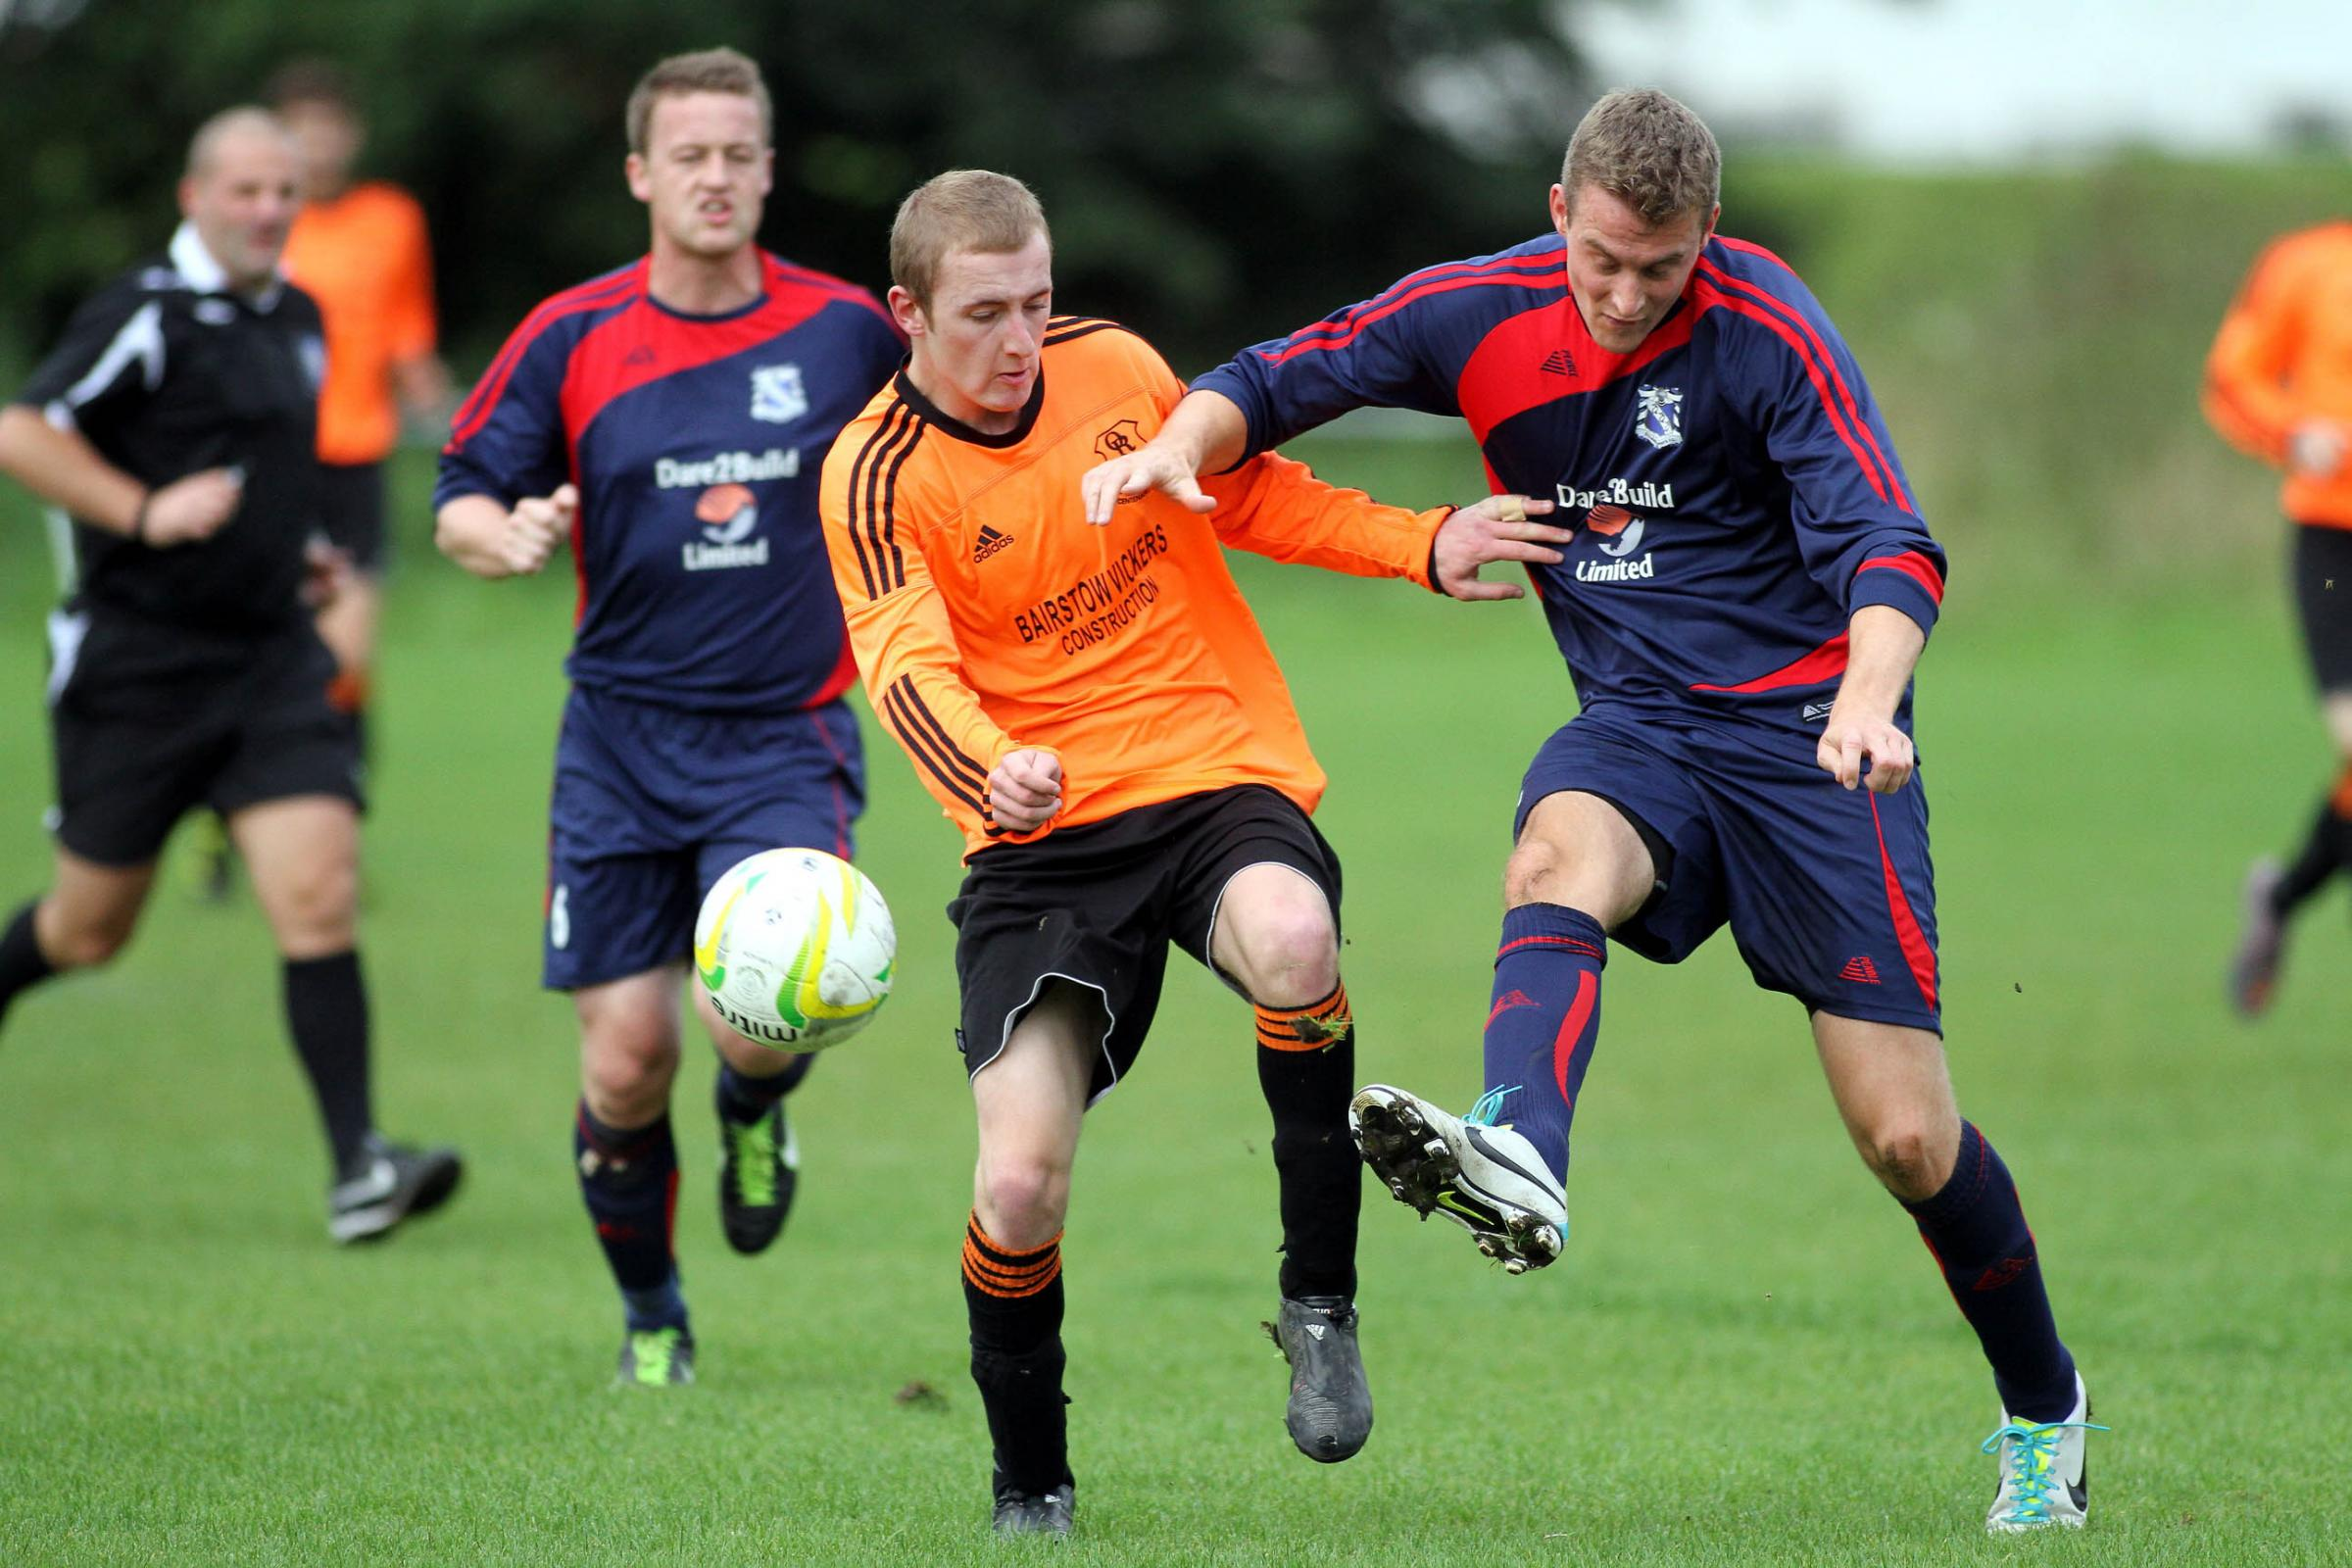 Oxenhope's star man Tom Marshall, centre, scored four along with Dan Moriarty